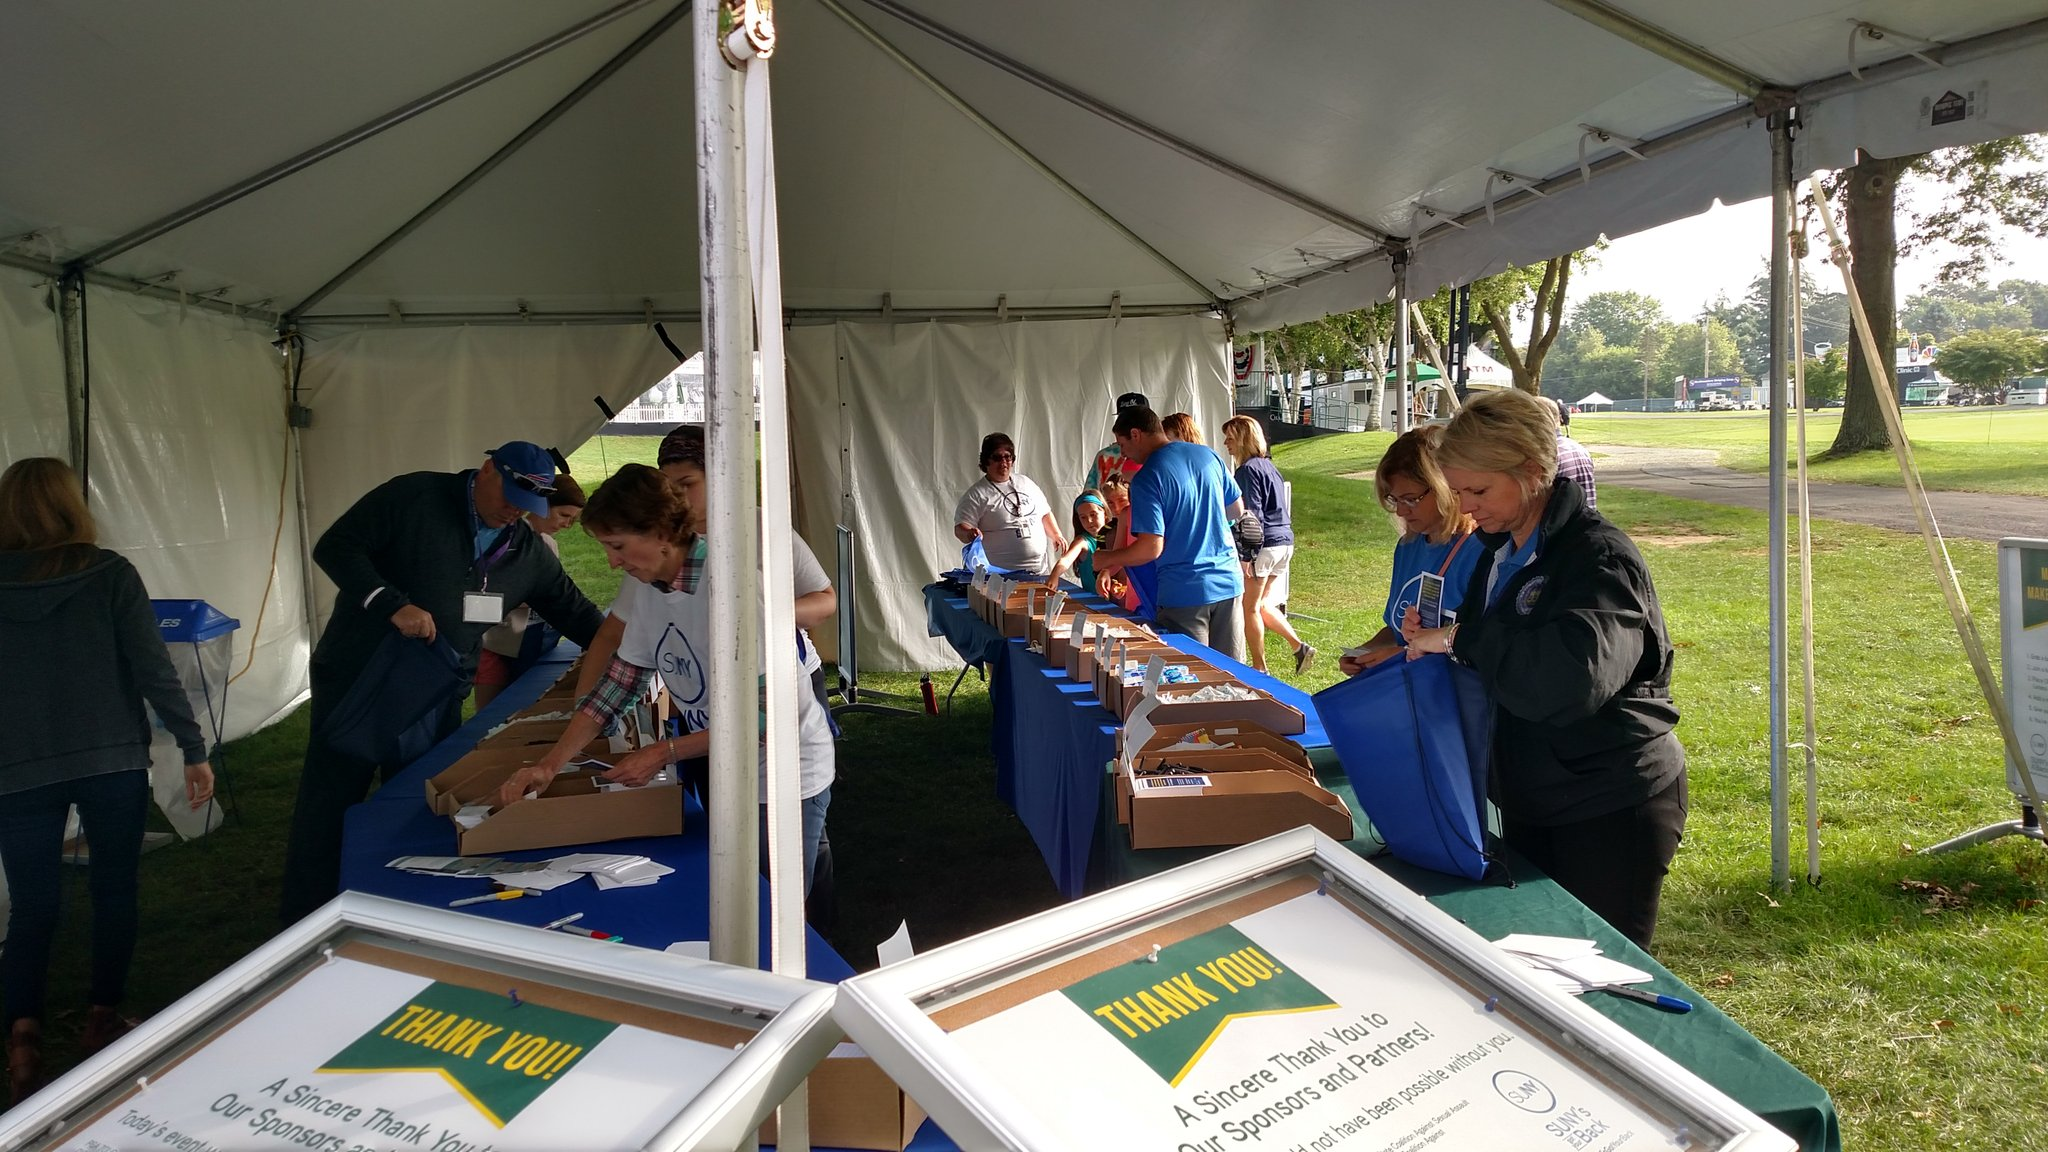 Volunteers hard at work at the #SUNYsgotyourback tent! https://t.co/Hj6yD1SRyL